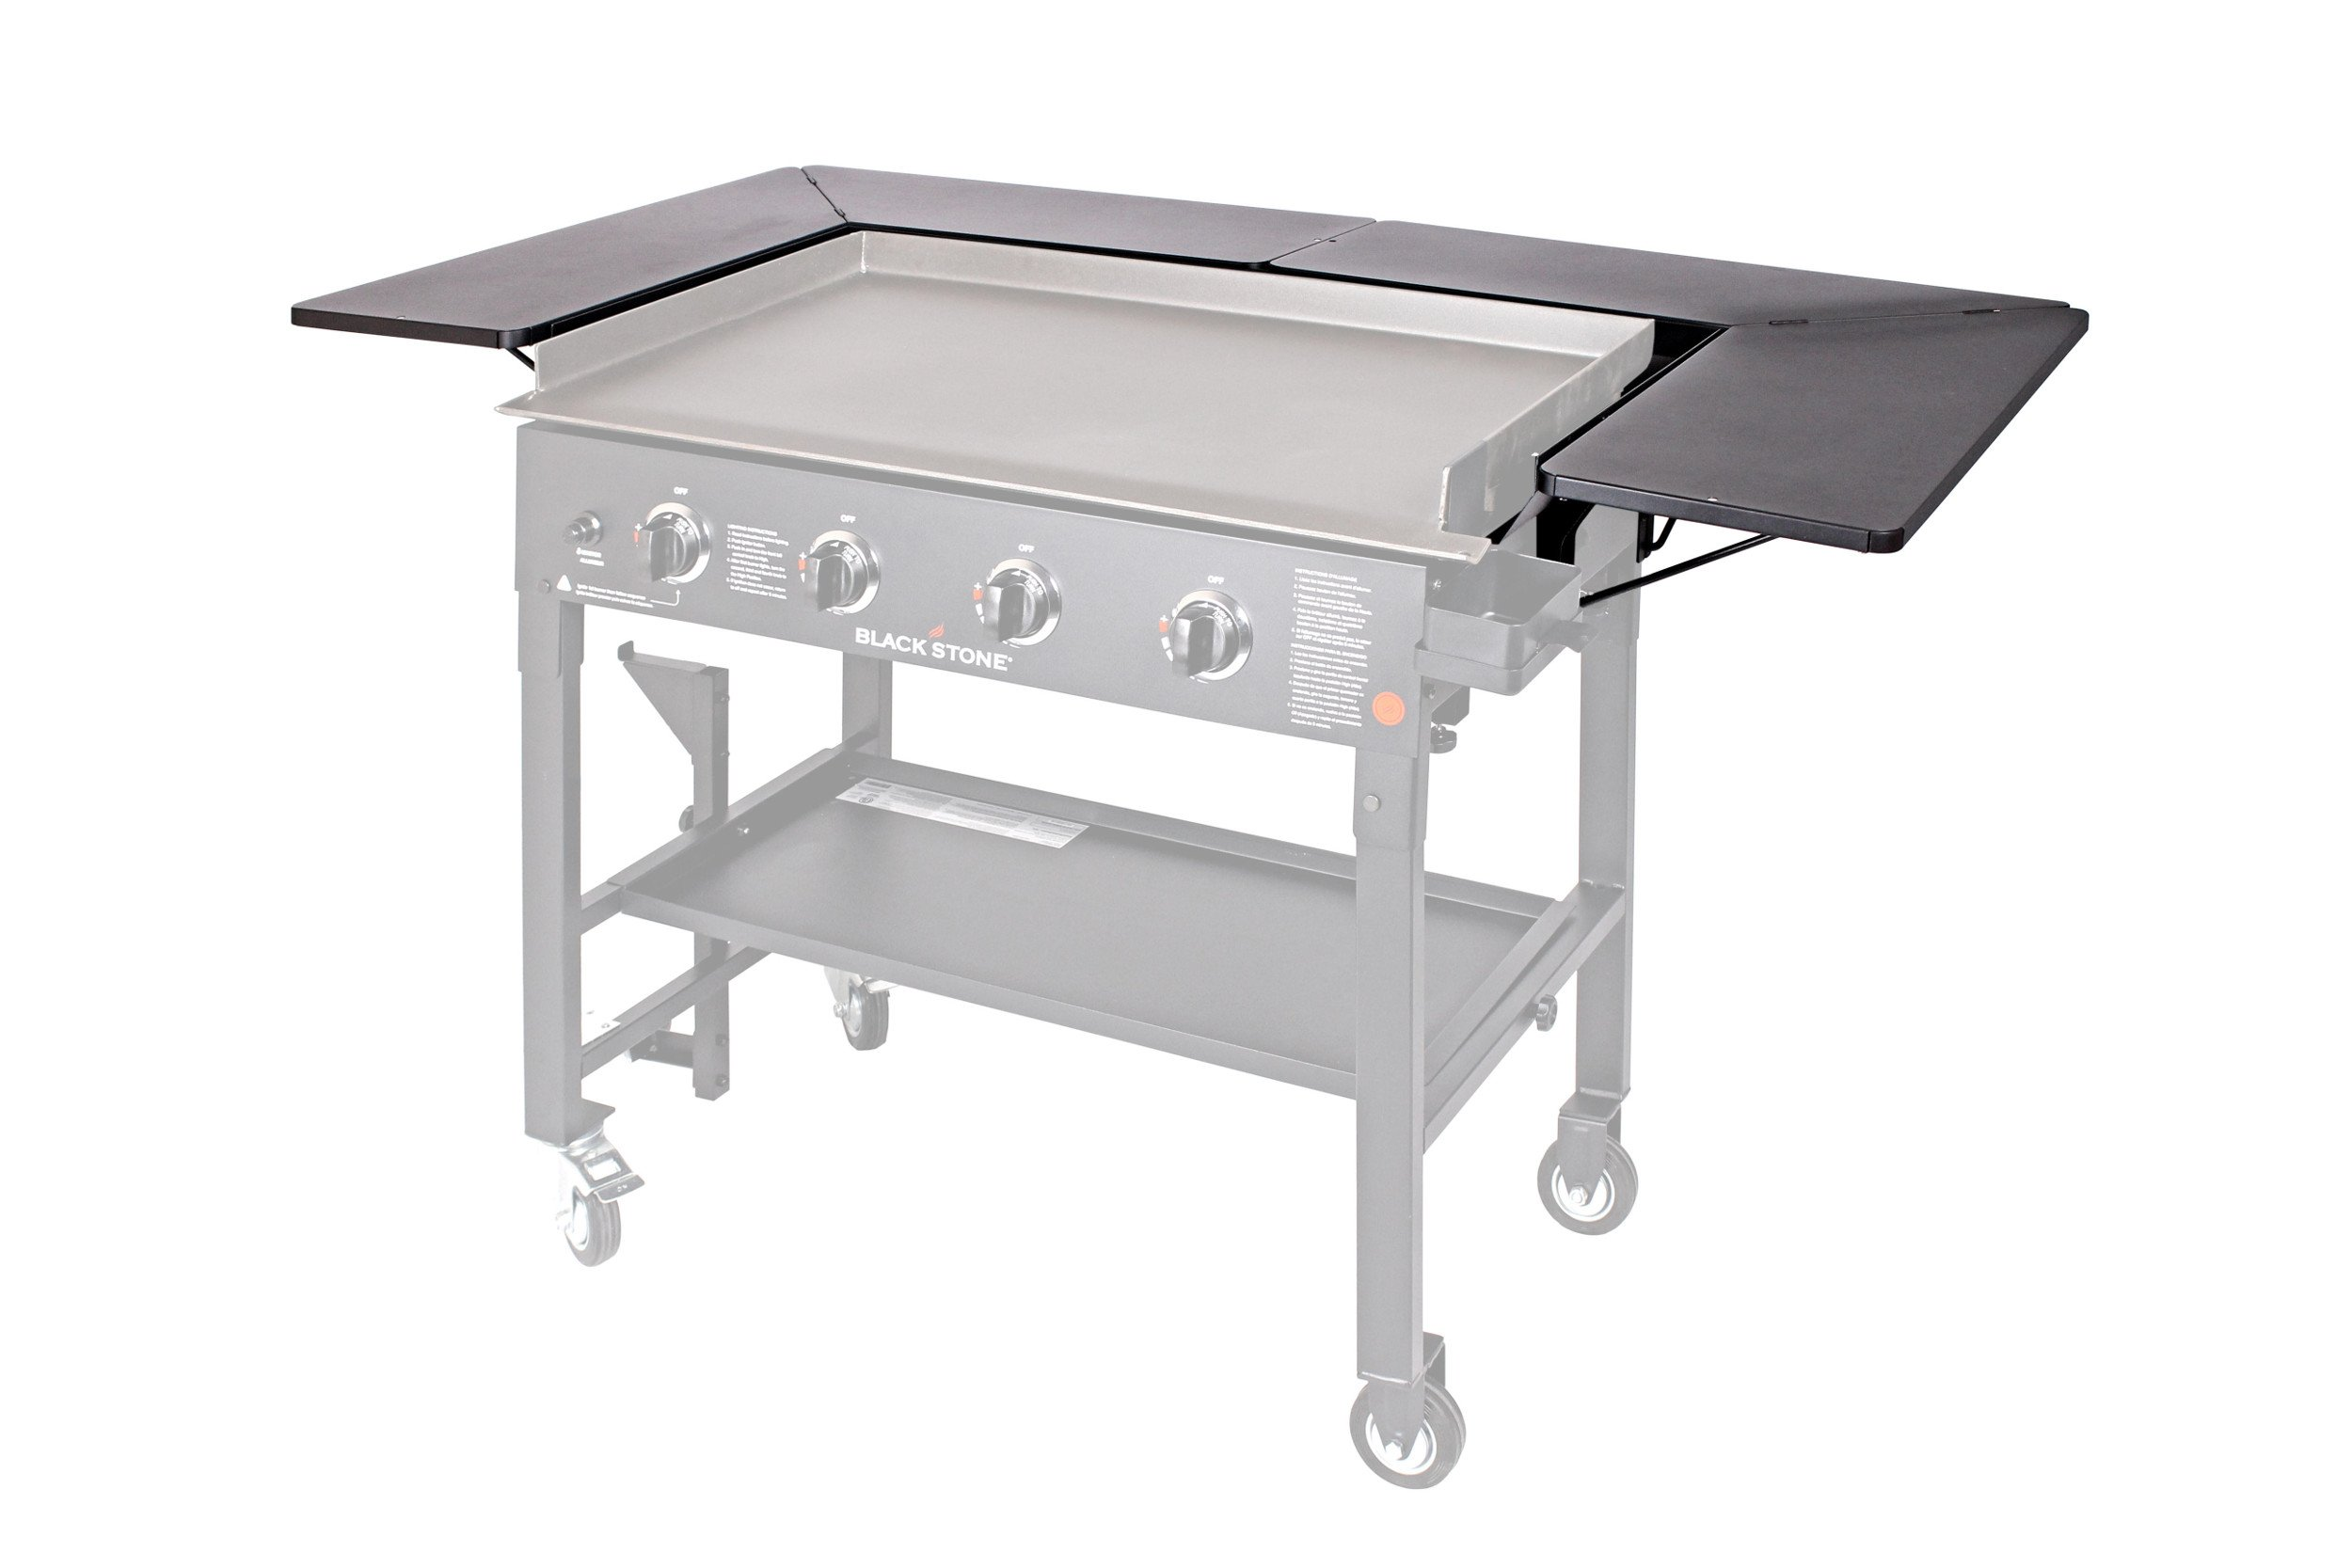 Blackstone Signature Accessories - 36 Inch Griddle Surround Table Accessory - Powder Coated Steel (Grill not included and Doesn't fit the 36'' Griddle with New Rear Grease Model)